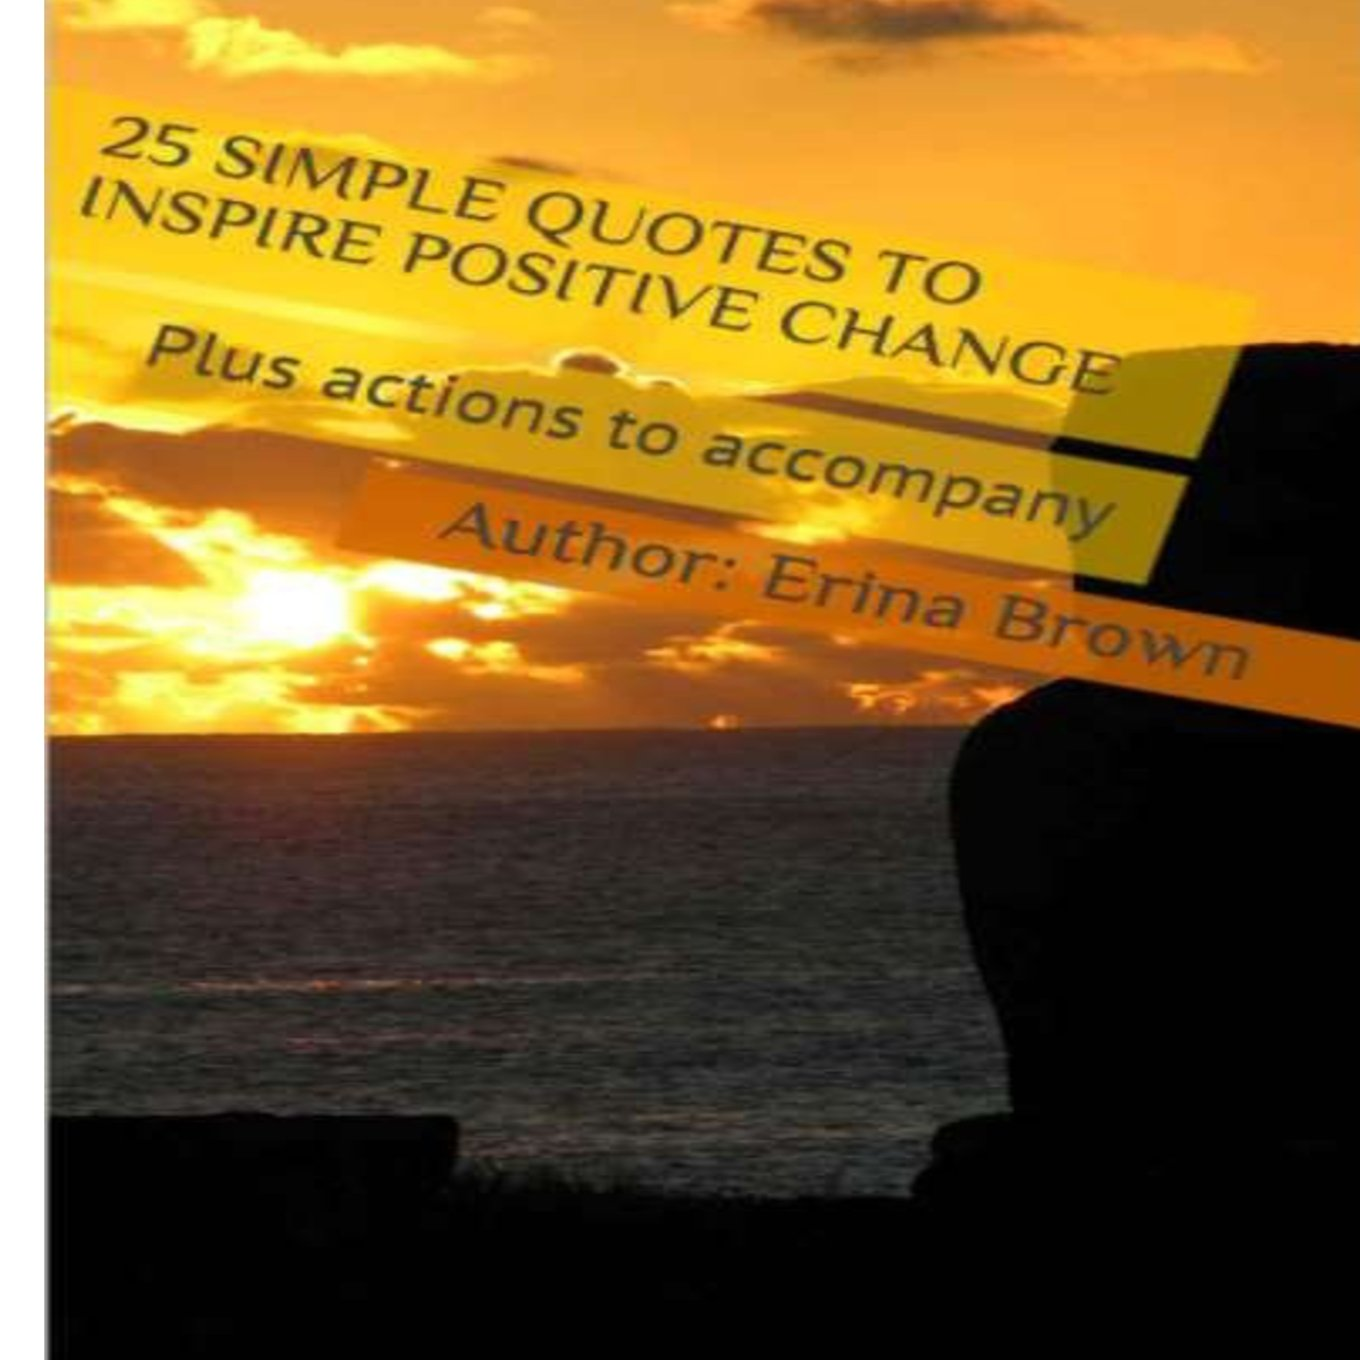 25 Simple Quotes To Inspire Positive Change With Bonus Actions To